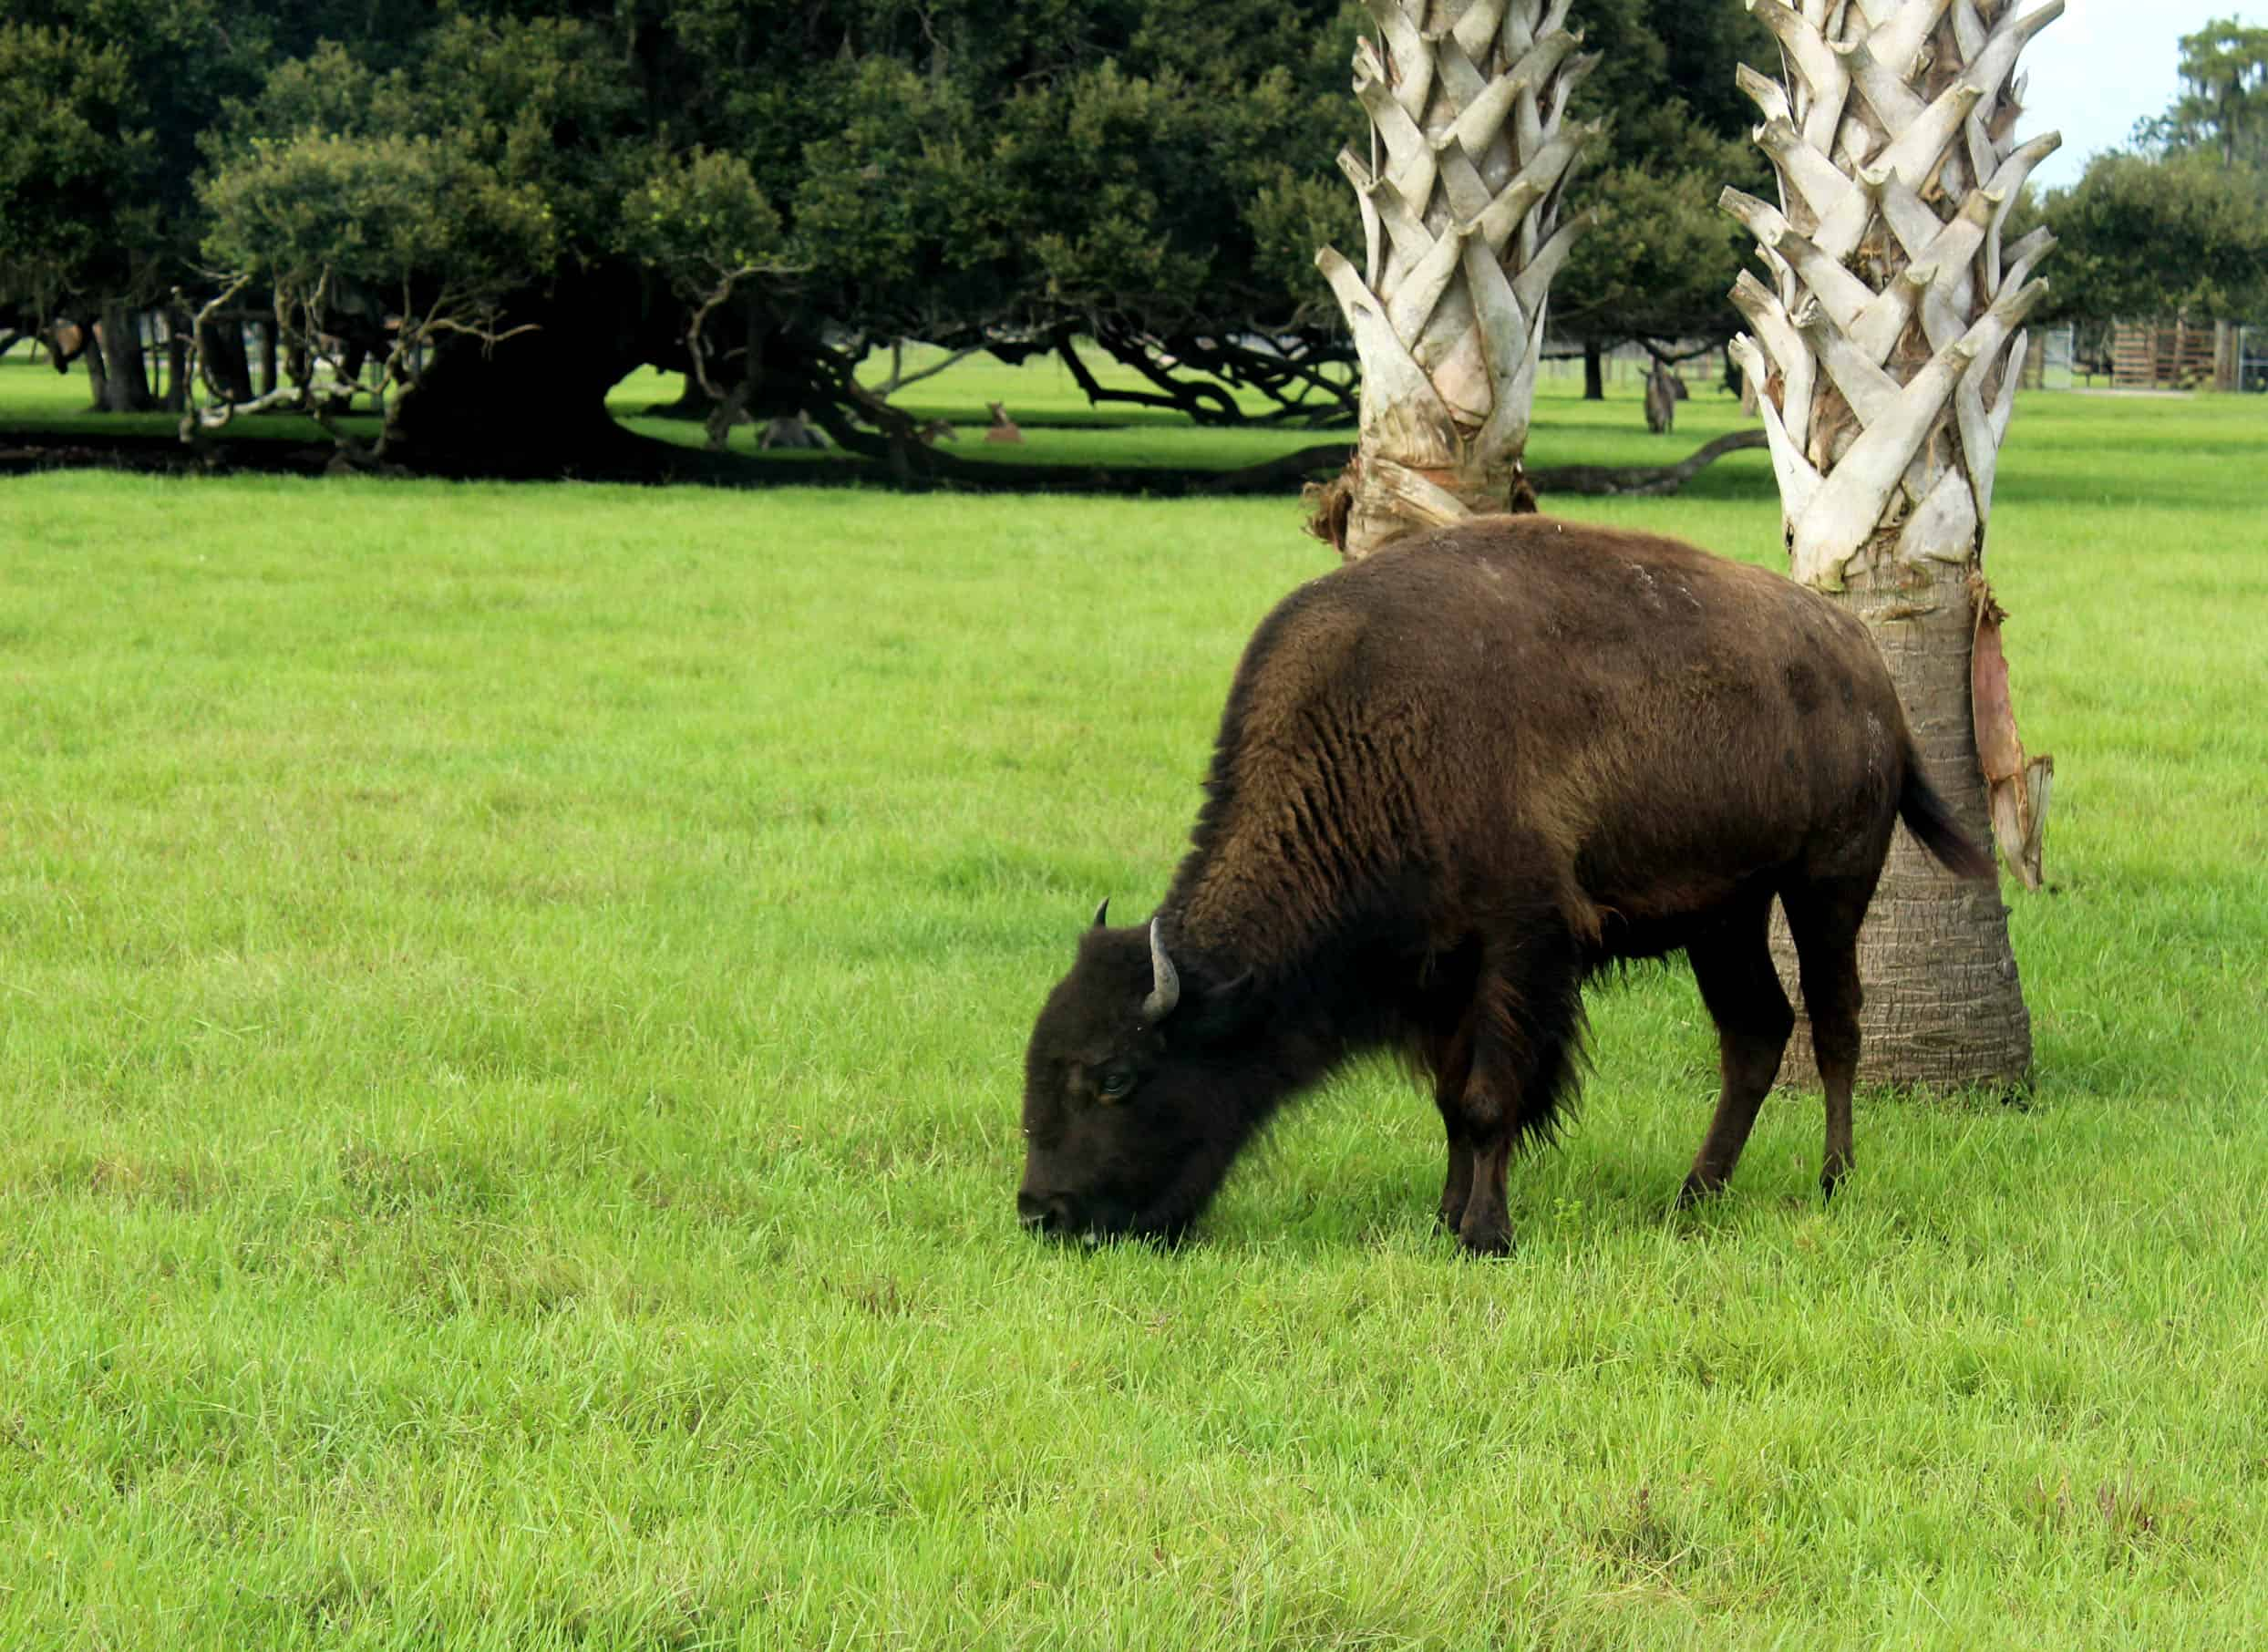 Bison at Wild Florida